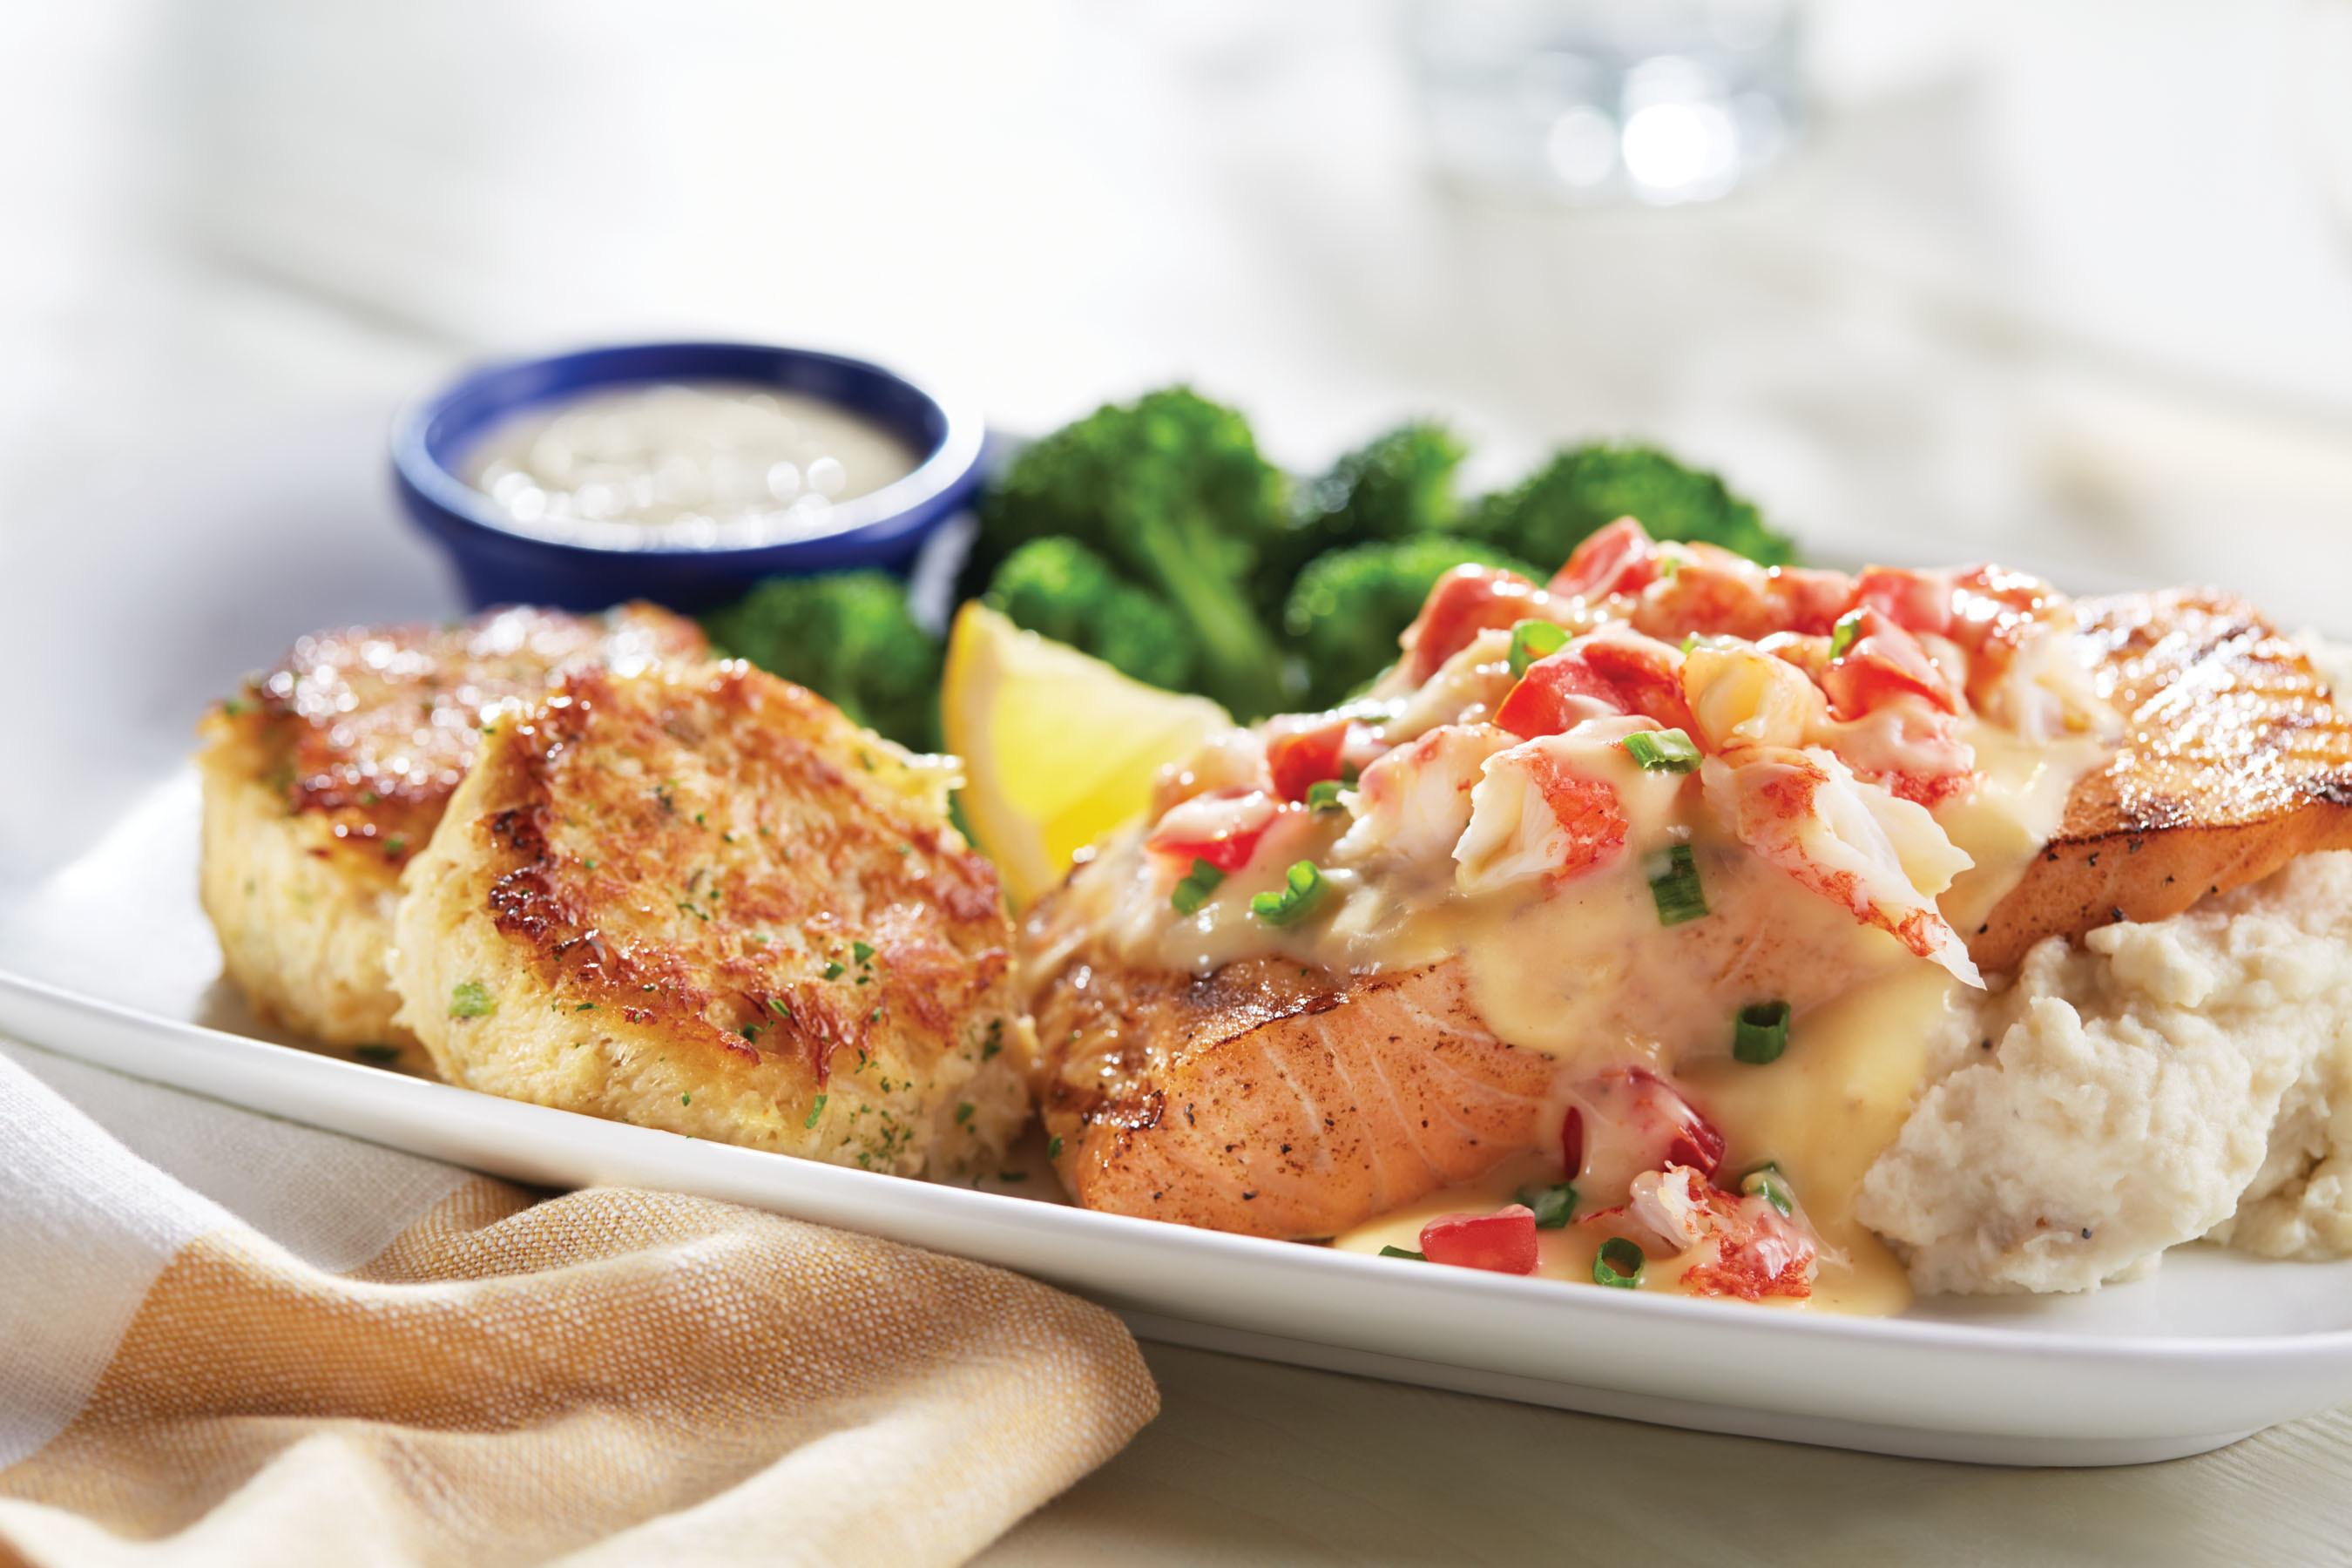 For the first time, Red Lobster is pairing wood-grilled, fresh Atlantic Salmon with premium jumbo lump crab cakes and a savory crab topping in its NEW! Jumbo Lump Crab Cakes & Crab-Topped Salmon.